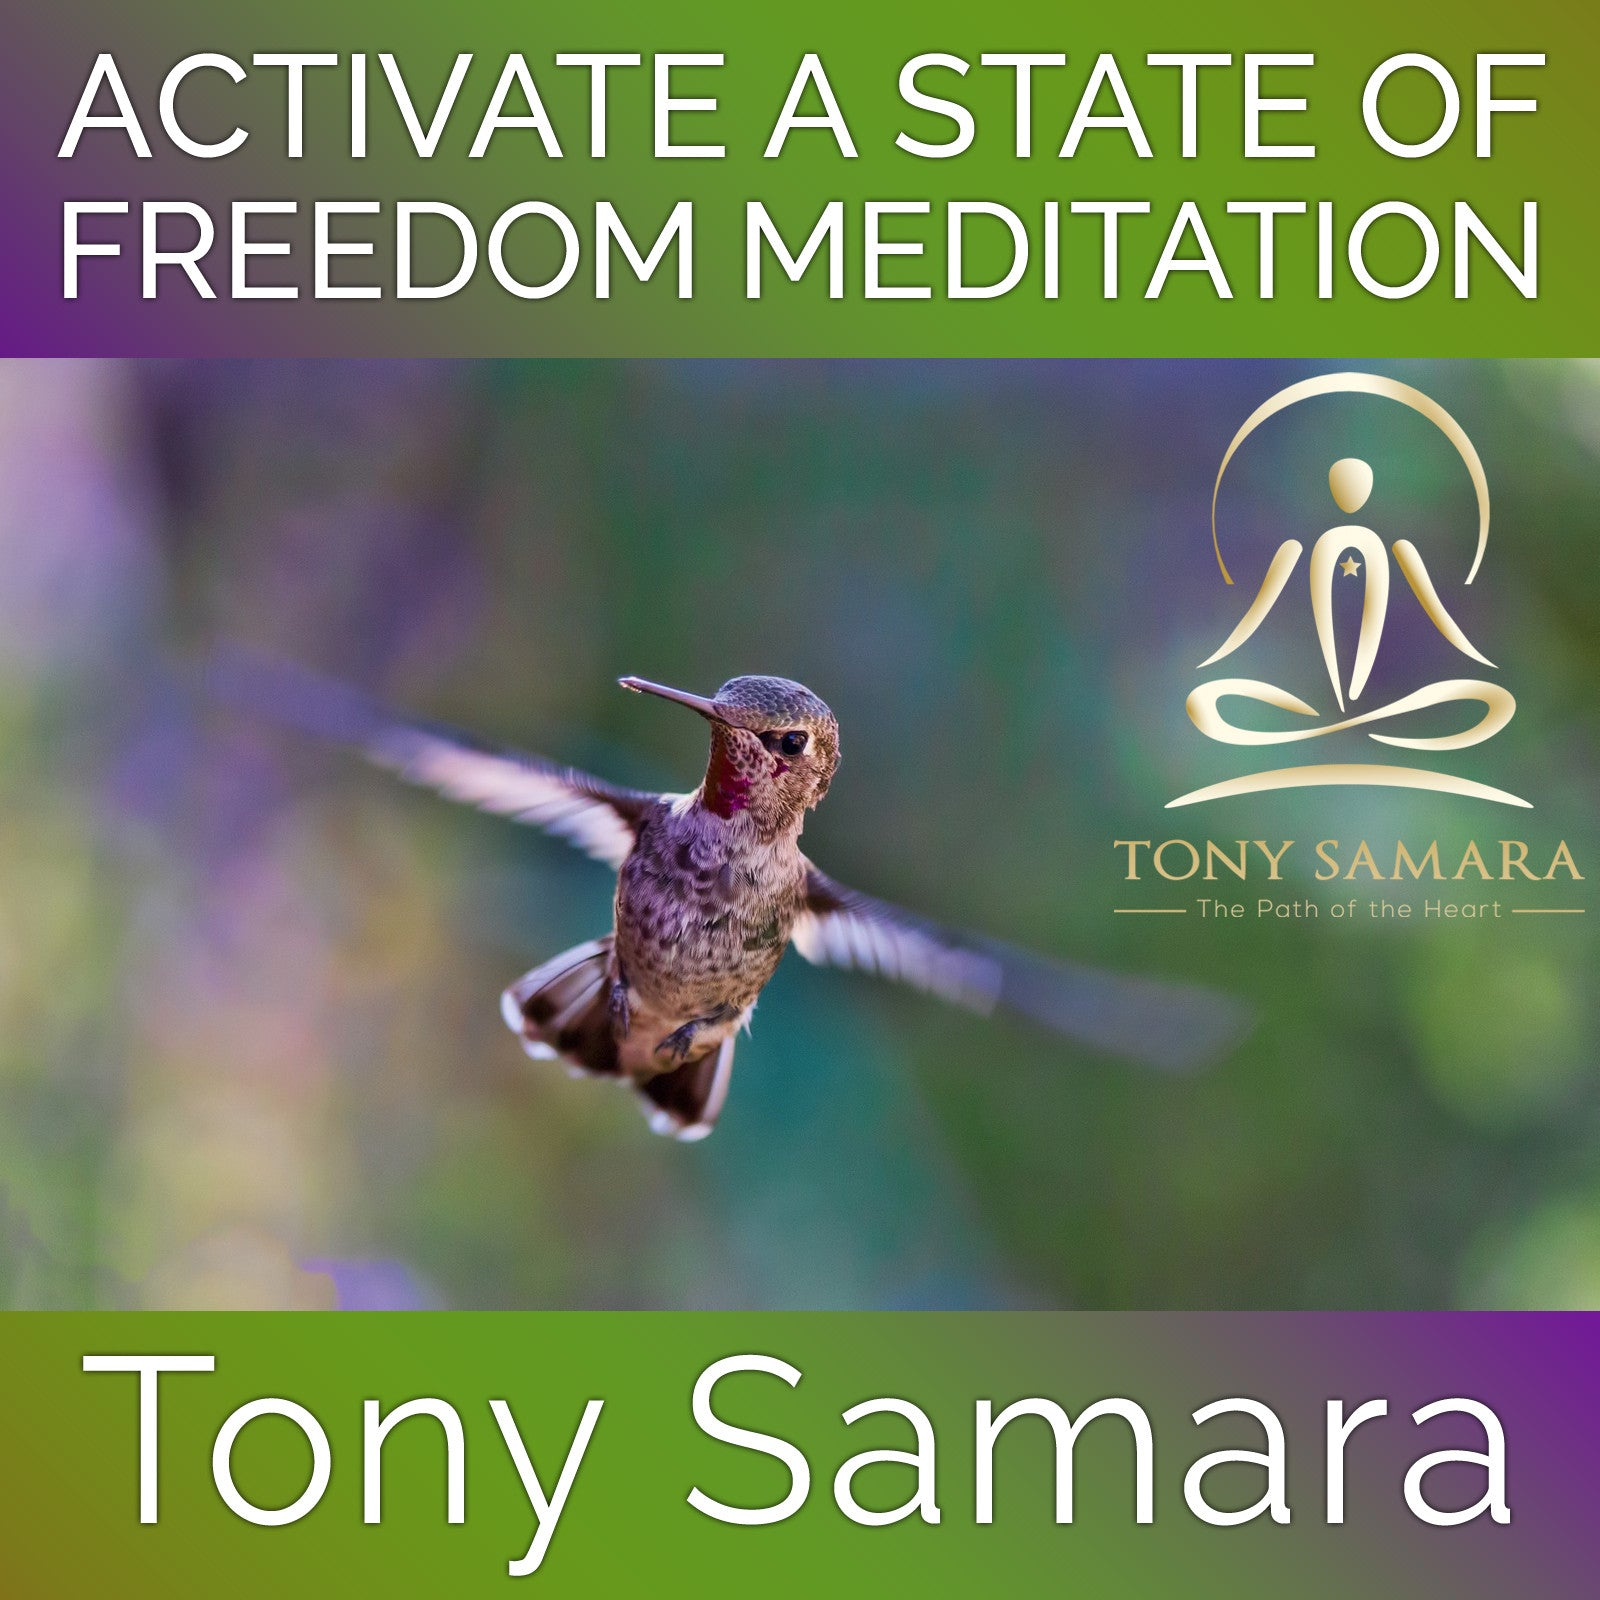 Activate a State of Freedom Meditation (MP3 Audio Download) - Tony Samara Meditation